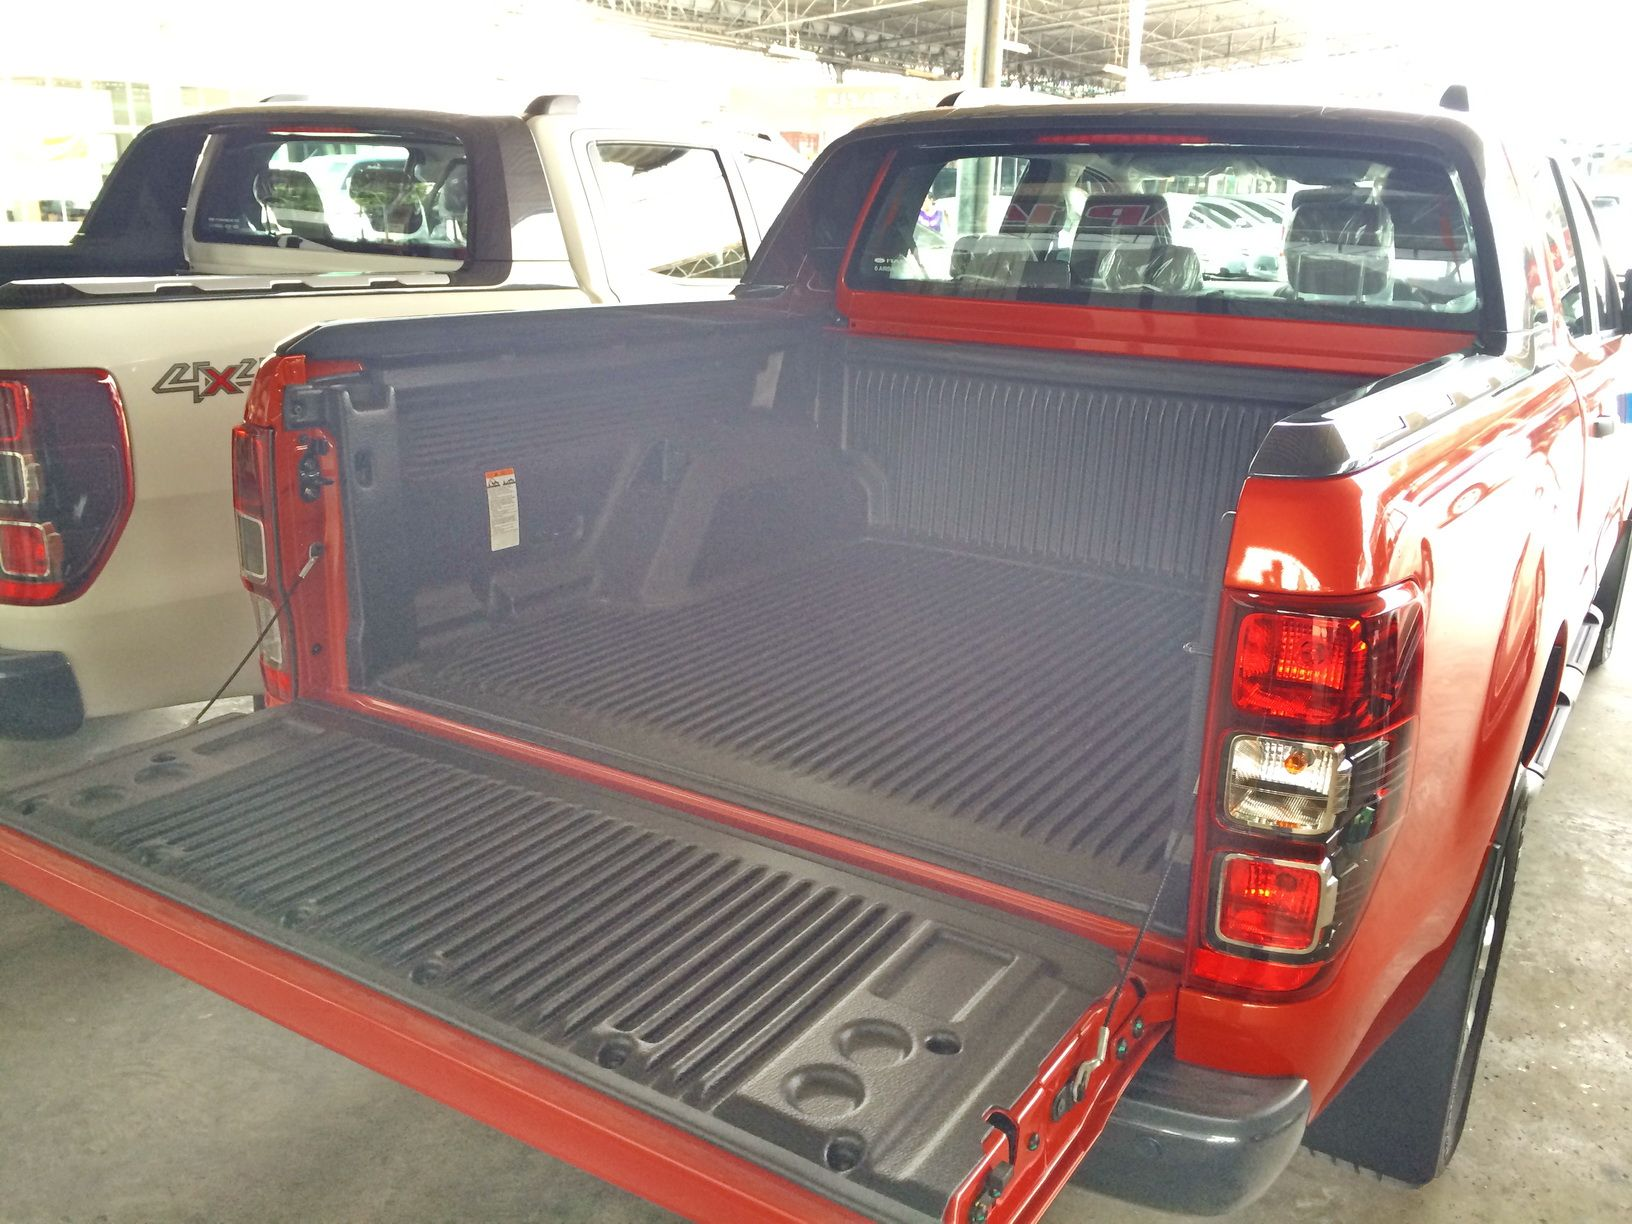 Ford ranger wildtrak 2014 model thailand orange rear view of back bed with bedliner installed at